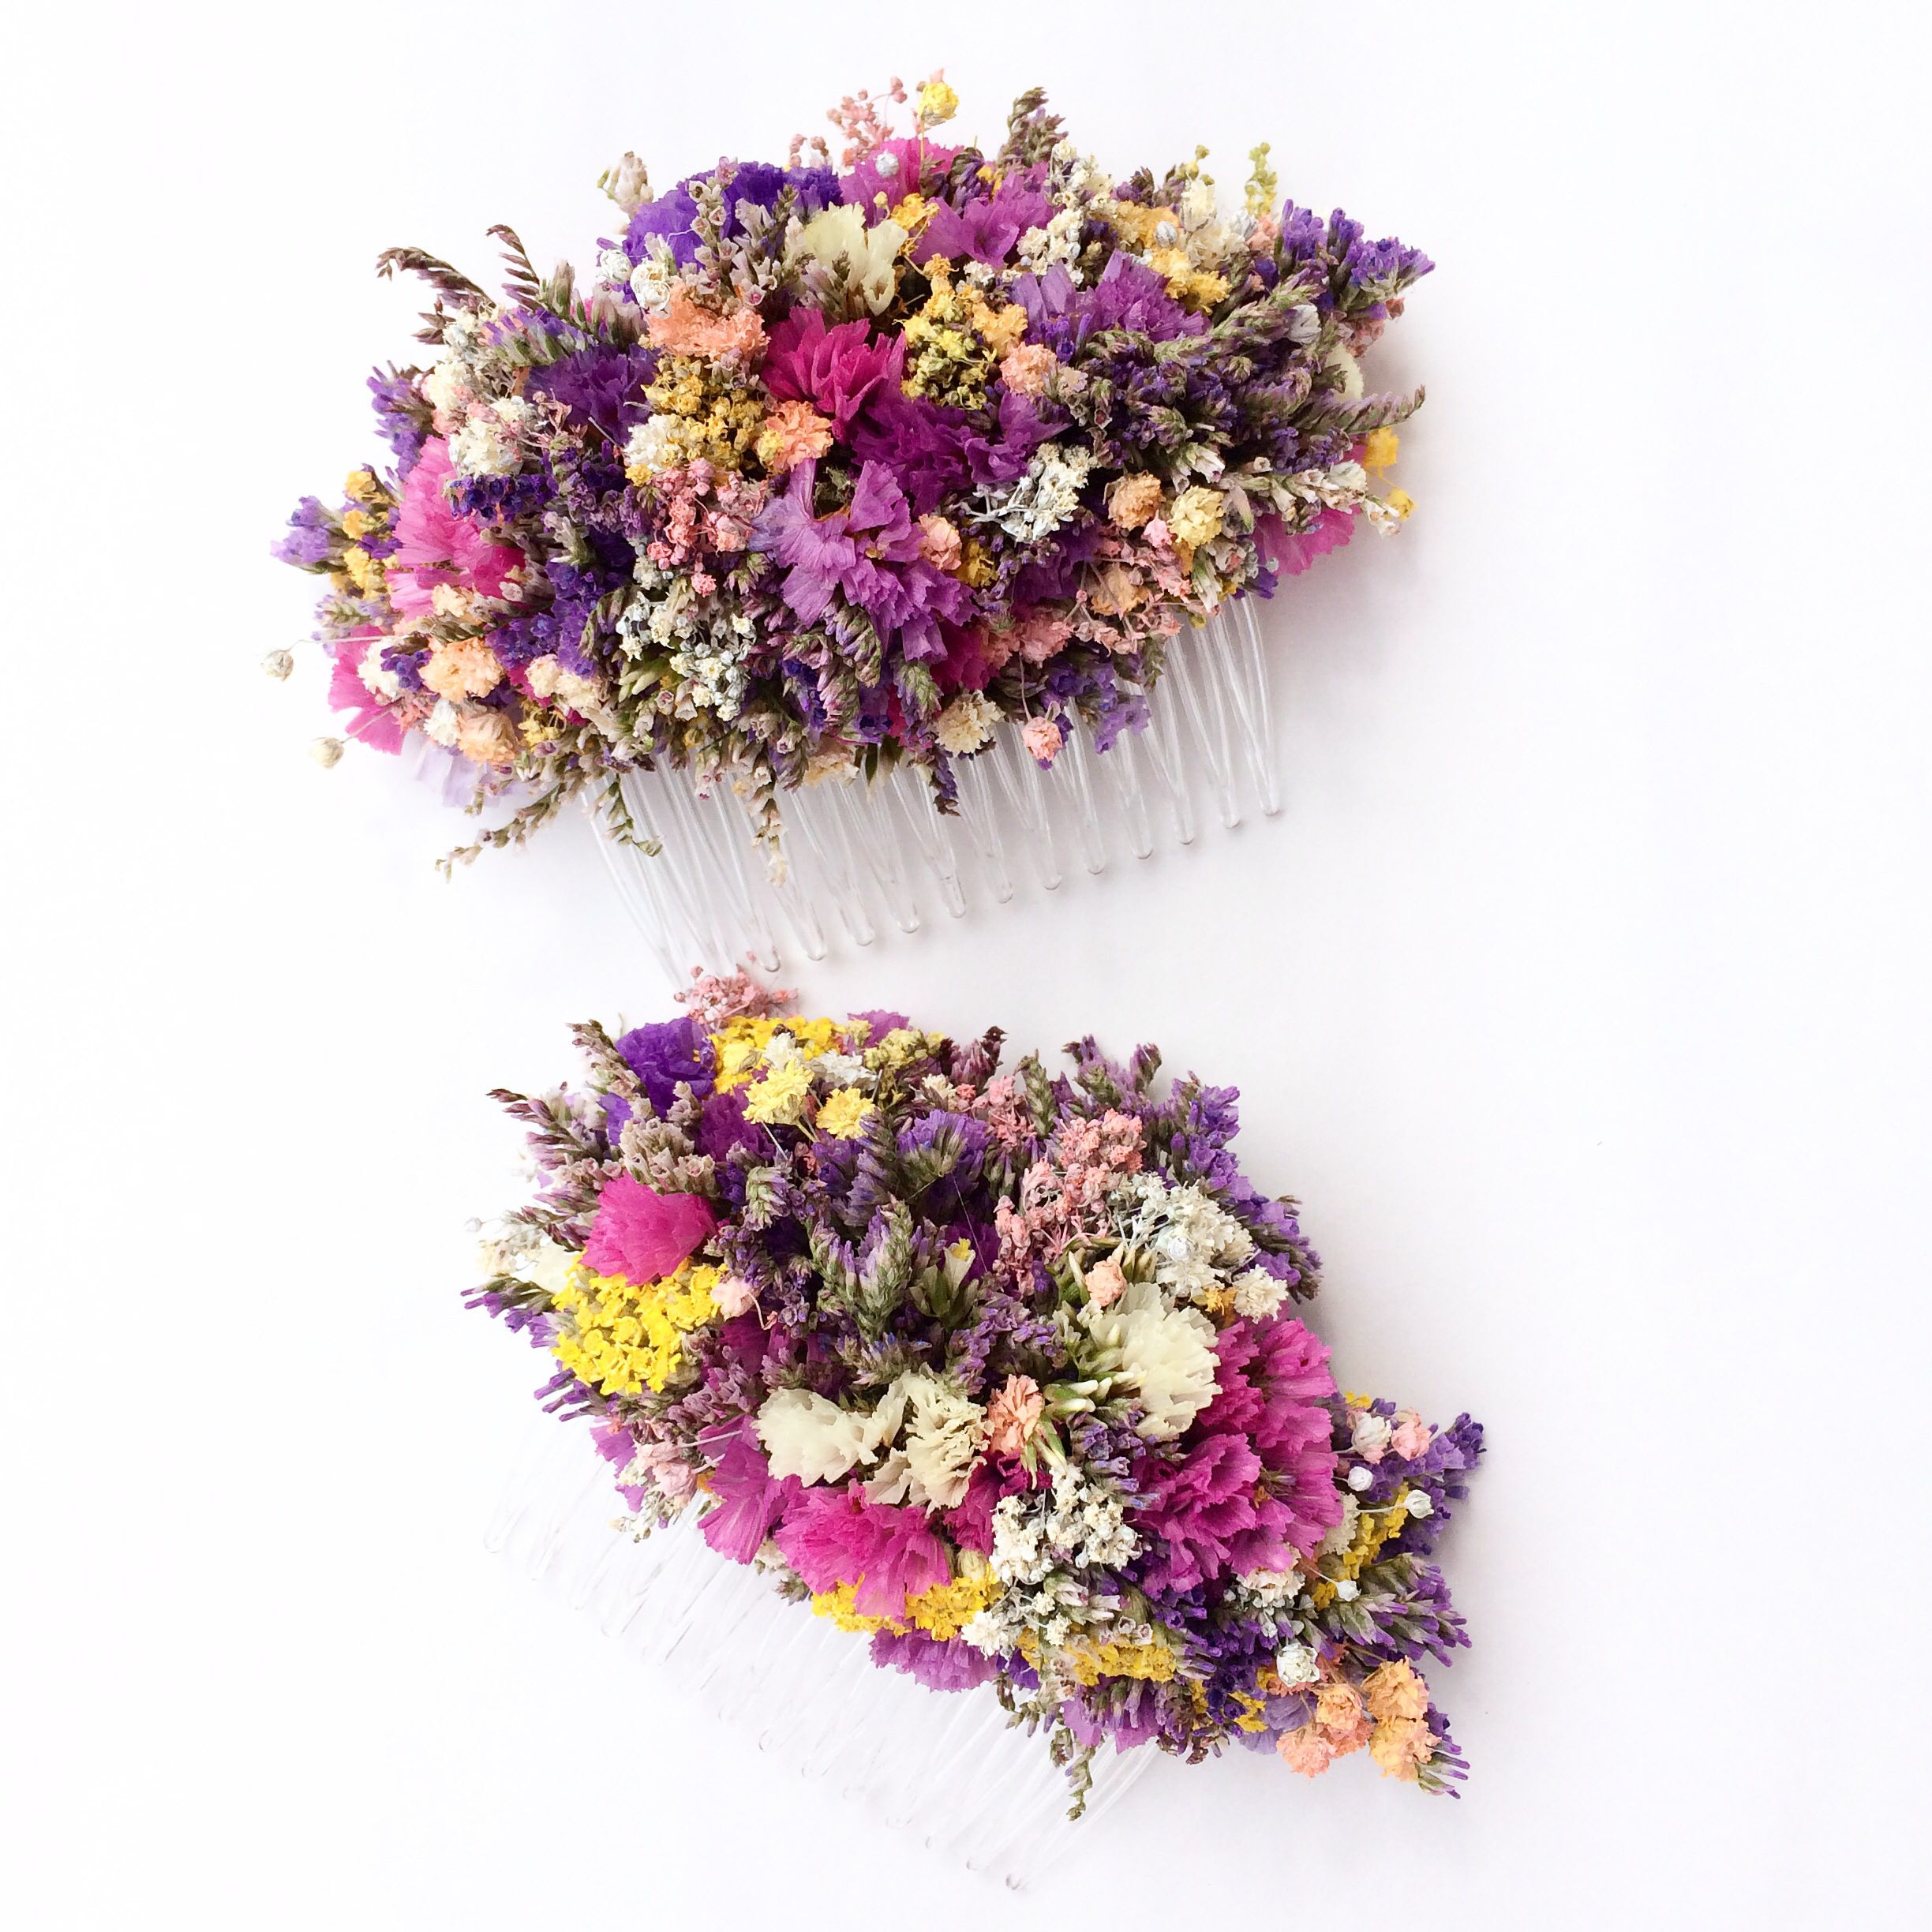 Wild English flowers hair combs available all natural